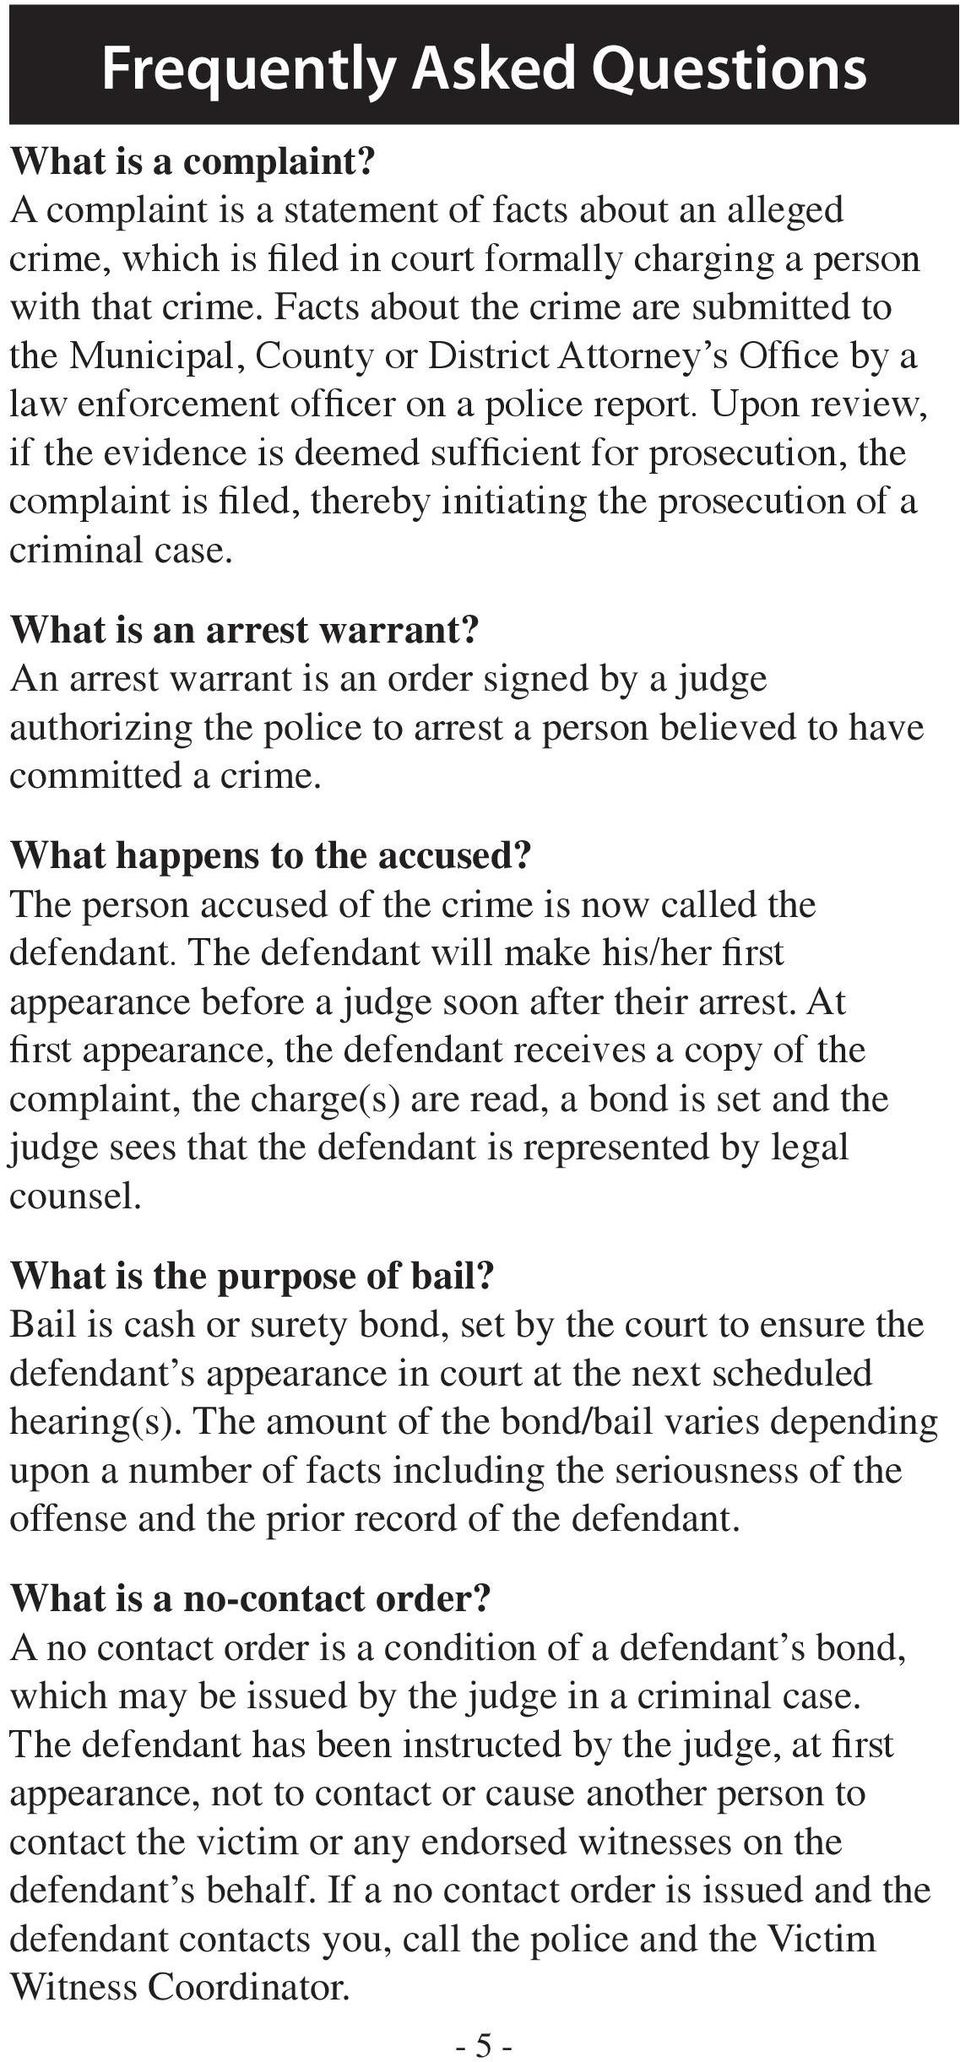 Upon review, if the evidence is deemed sufficient for prosecution, the complaint is filed, thereby initiating the prosecution of a criminal case. What is an arrest warrant?